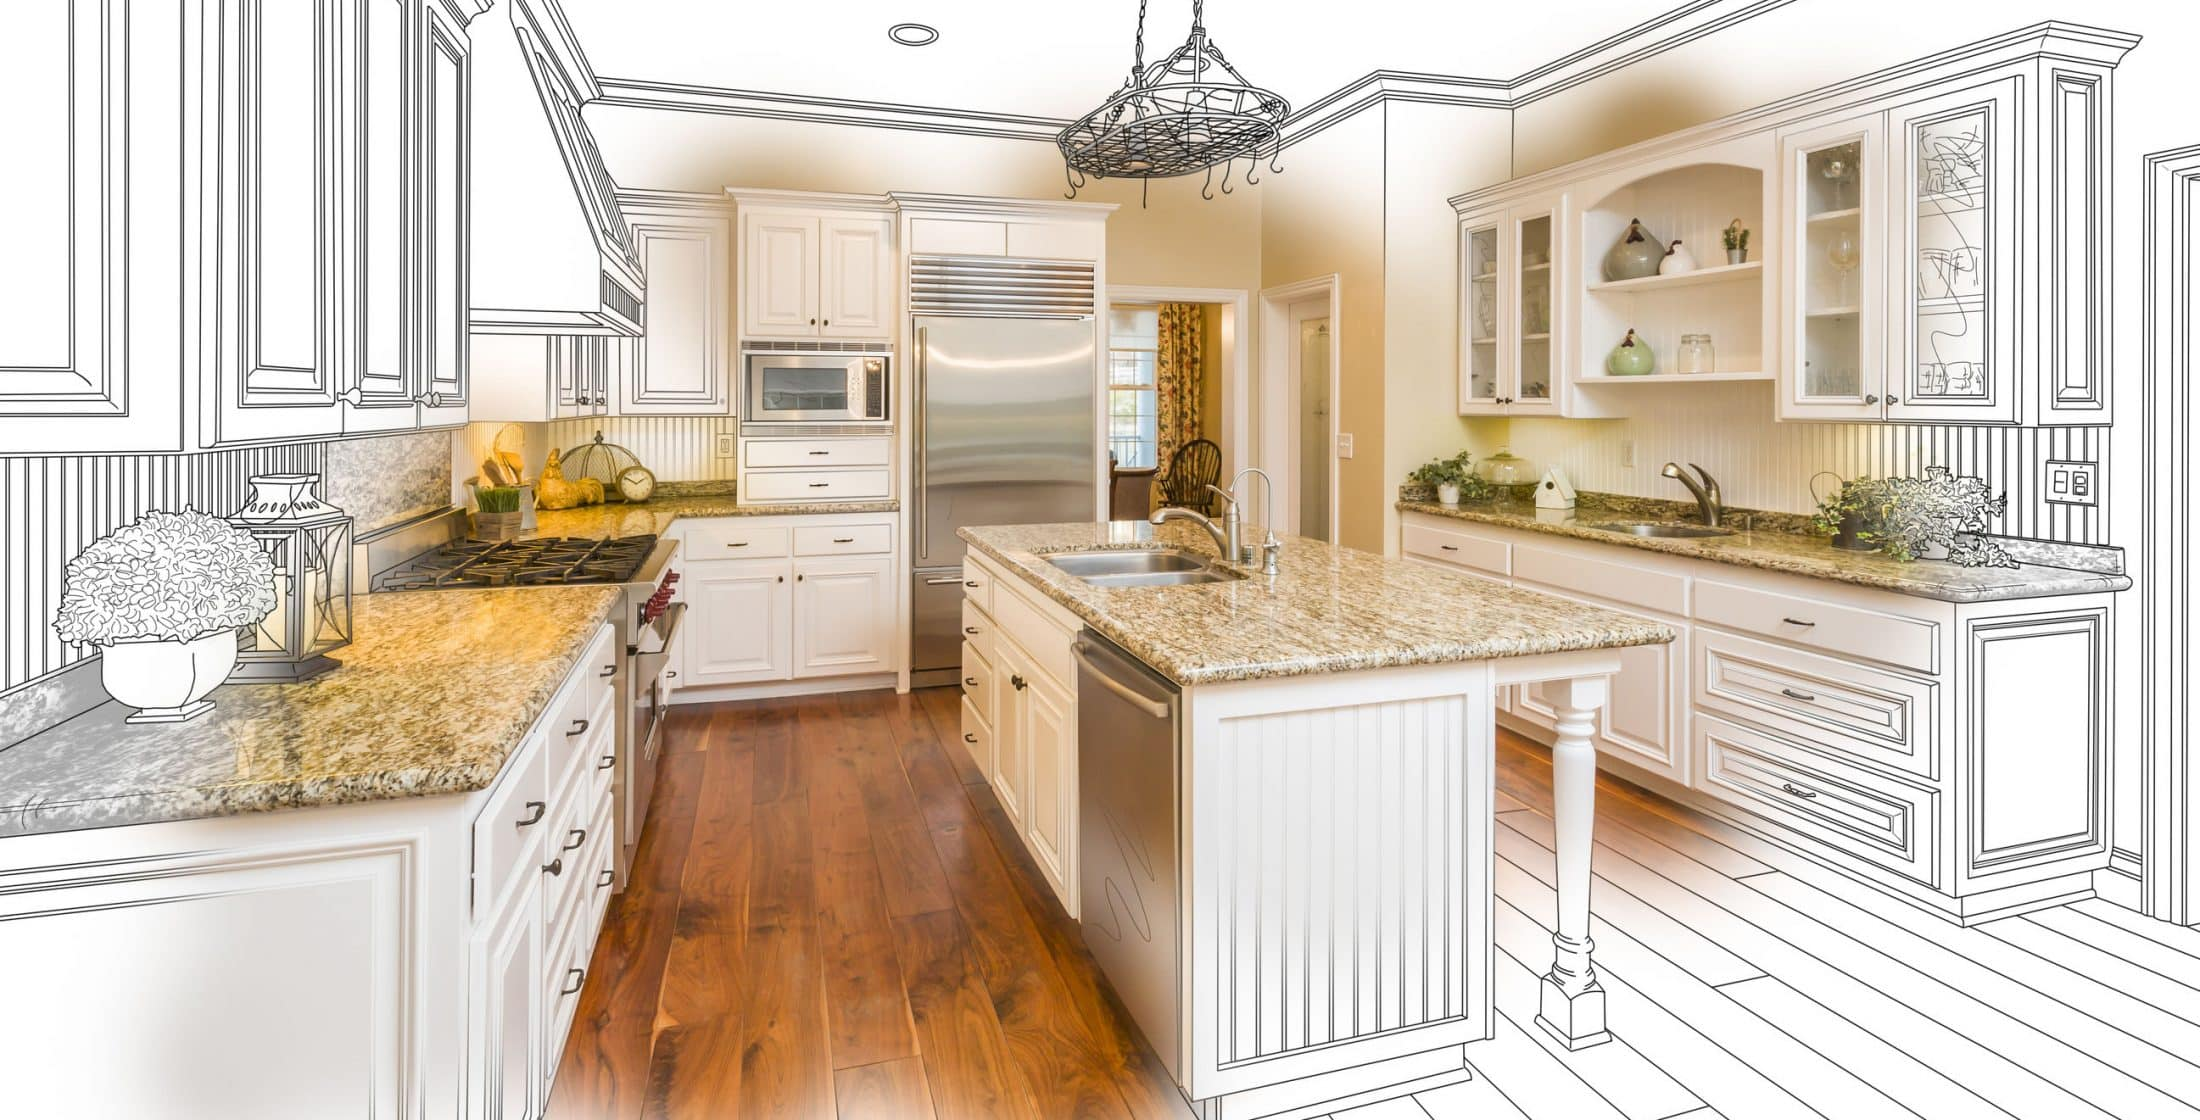 Beautiful Custom Kitchen Design Drawing and Gradated Photo Combination